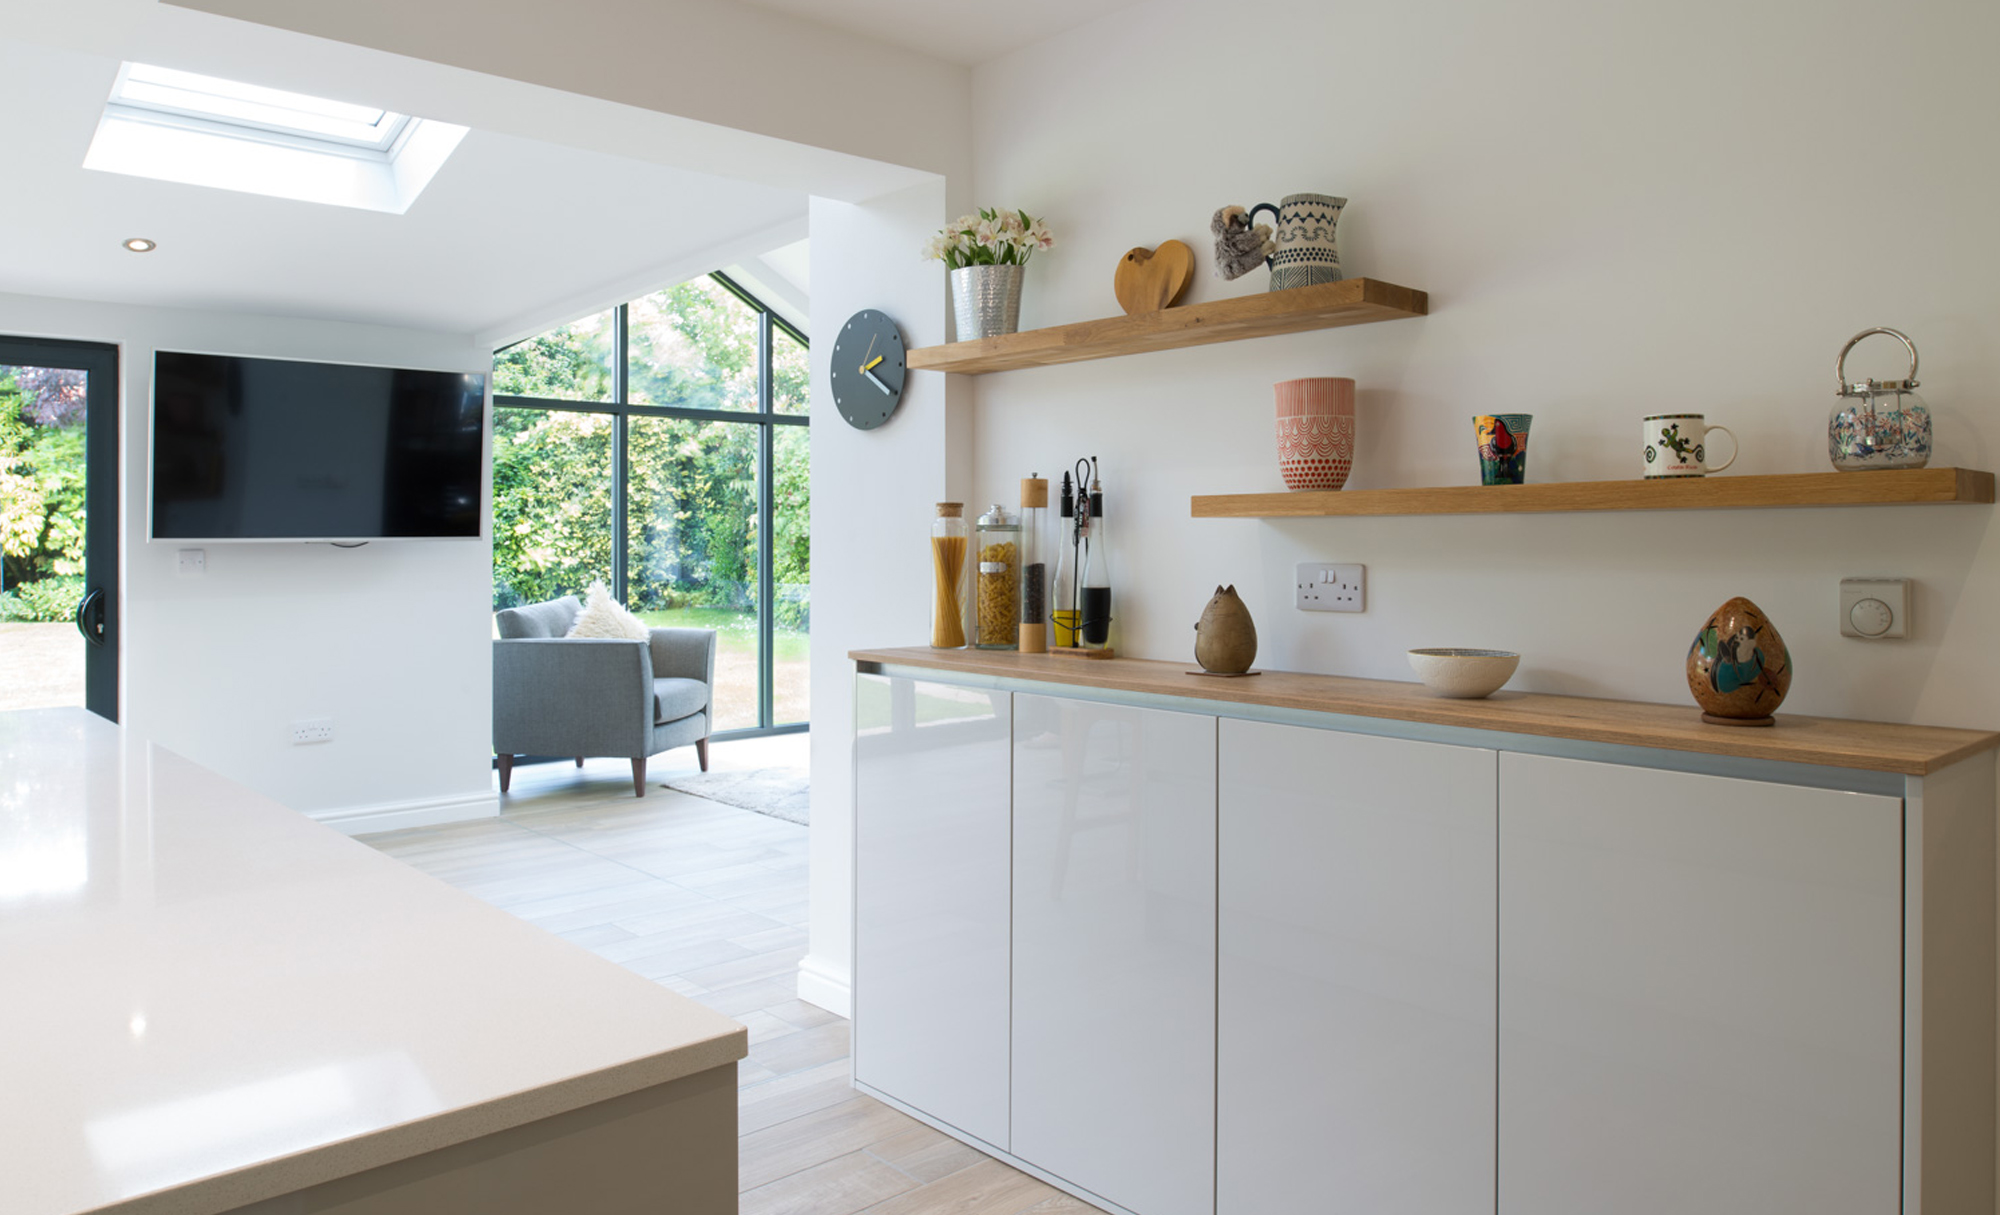 Kitchen Stori Zola Gloss Light Grey Kitchen by Maelstrom for a home in Lancaster Shelves